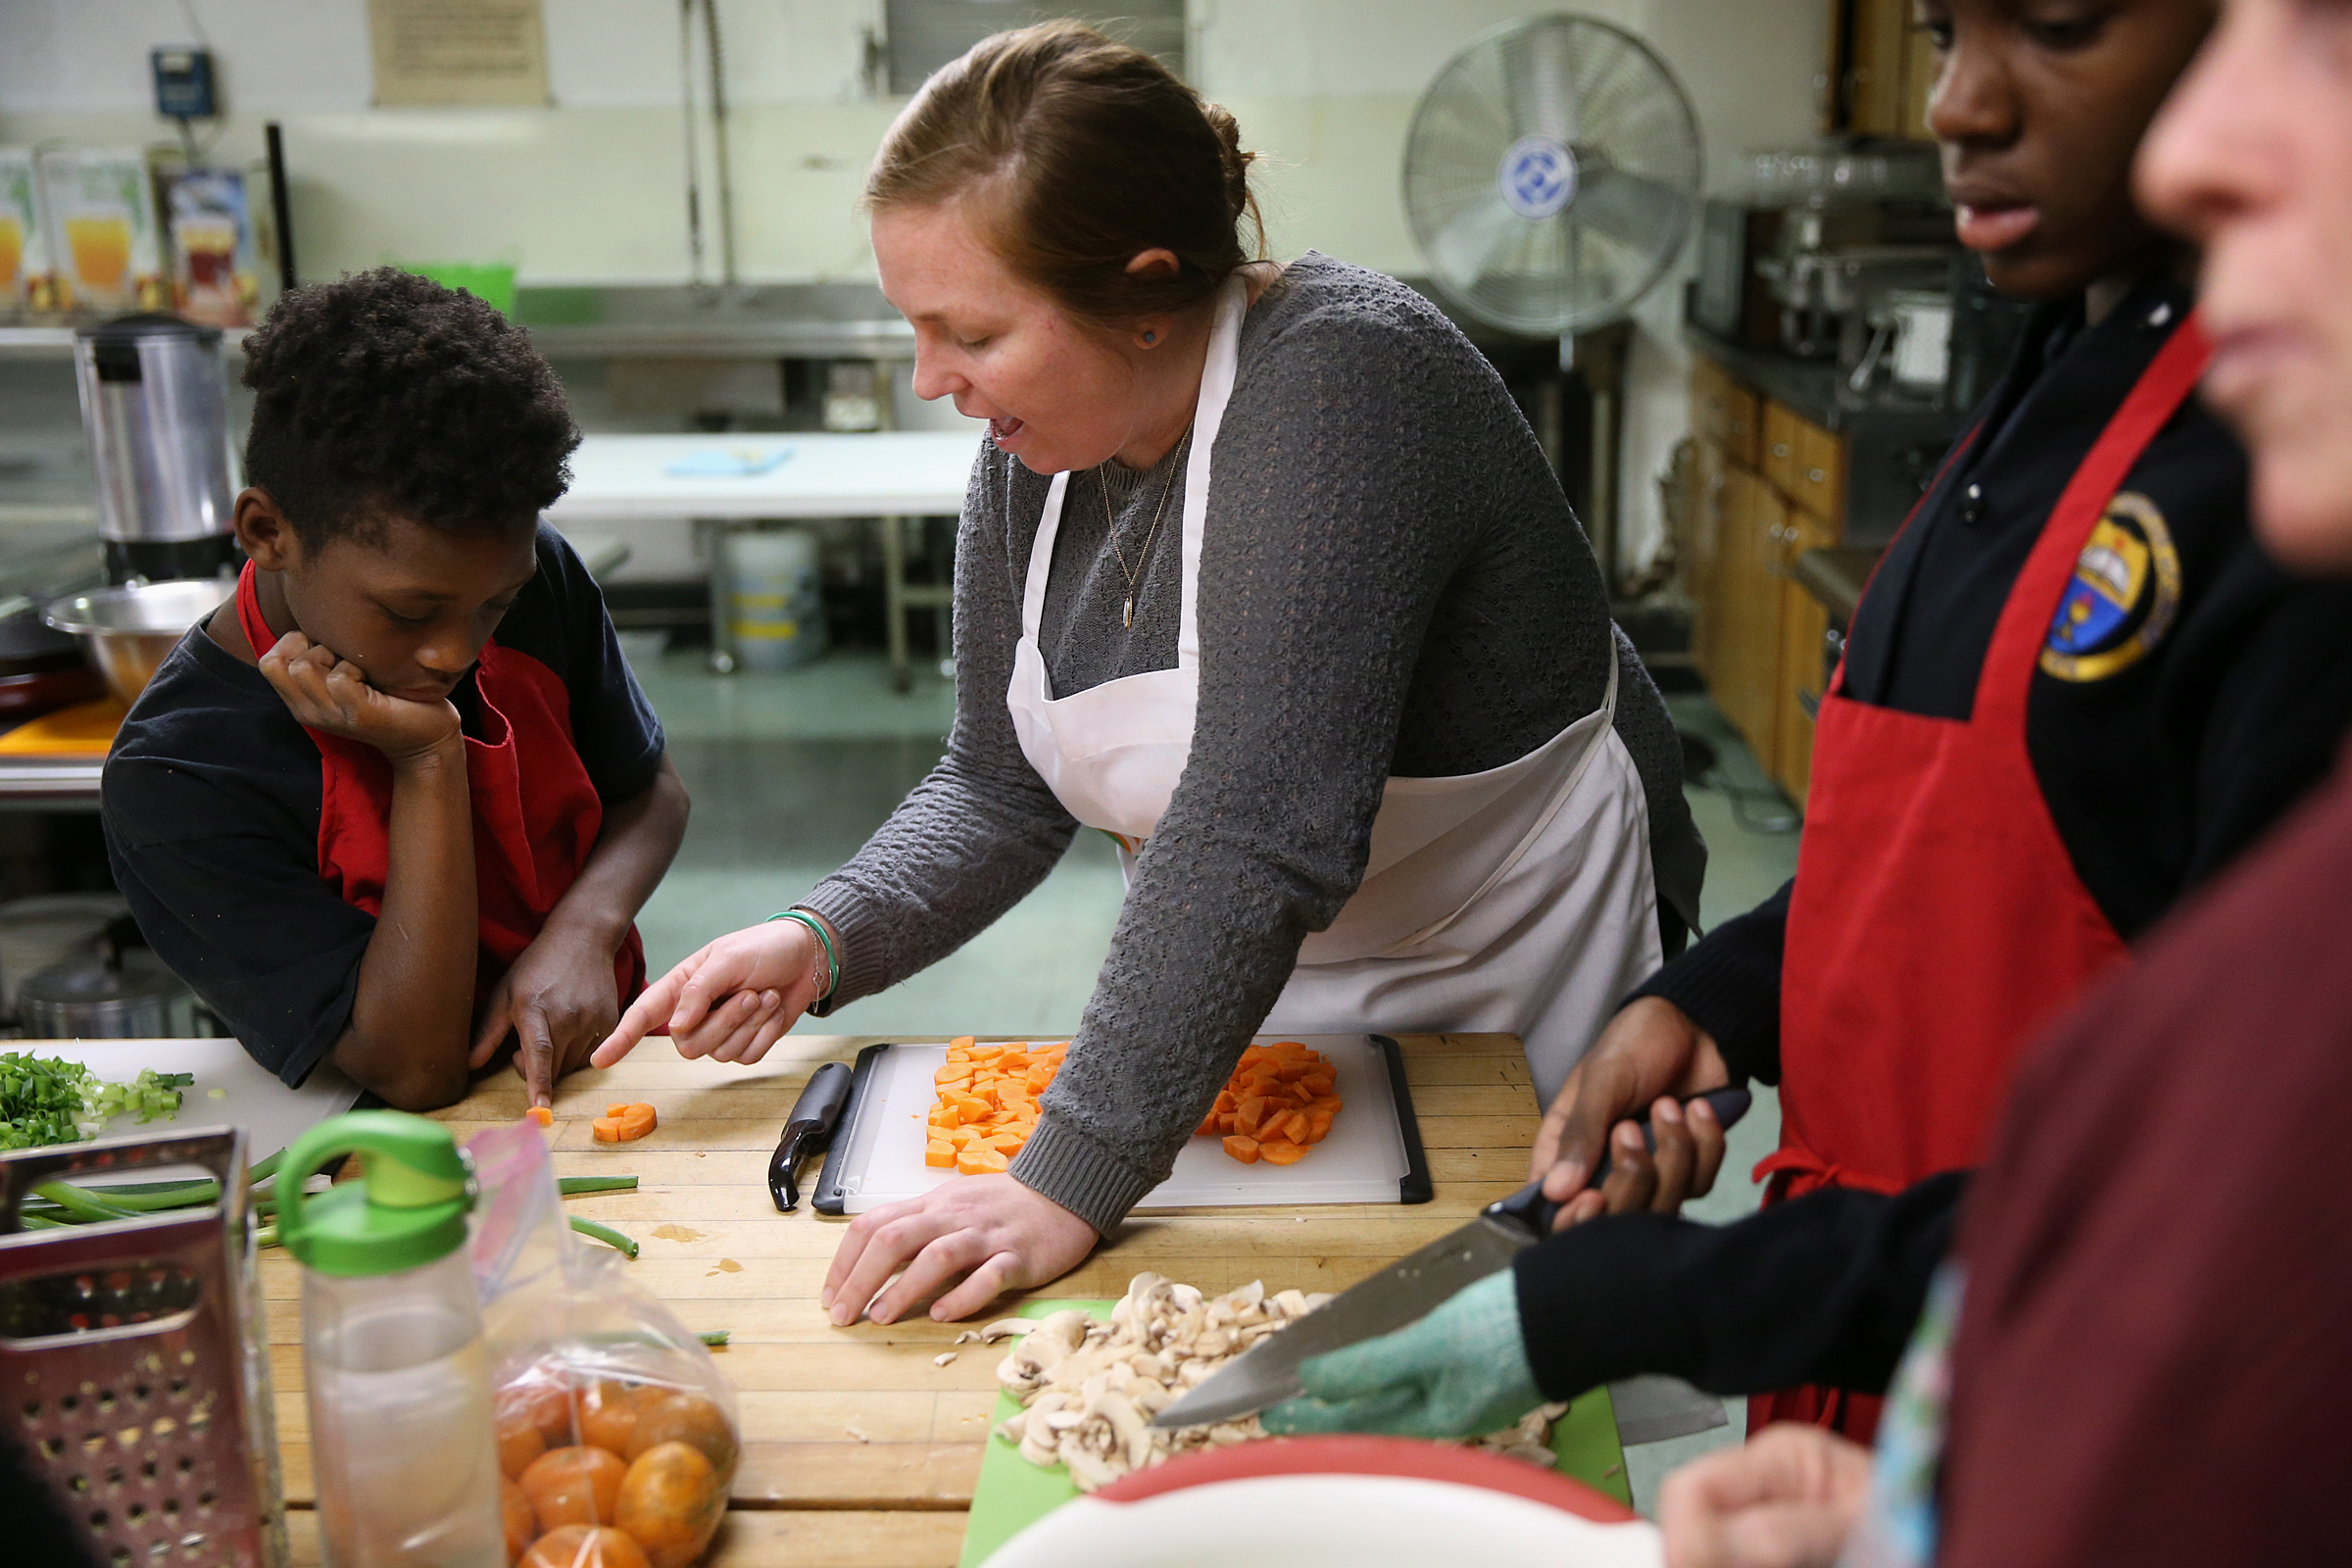 Instructor Maddy Booth, center, gives Germaine Glover, 10, a quick lesson in fractions using a carrot slice.